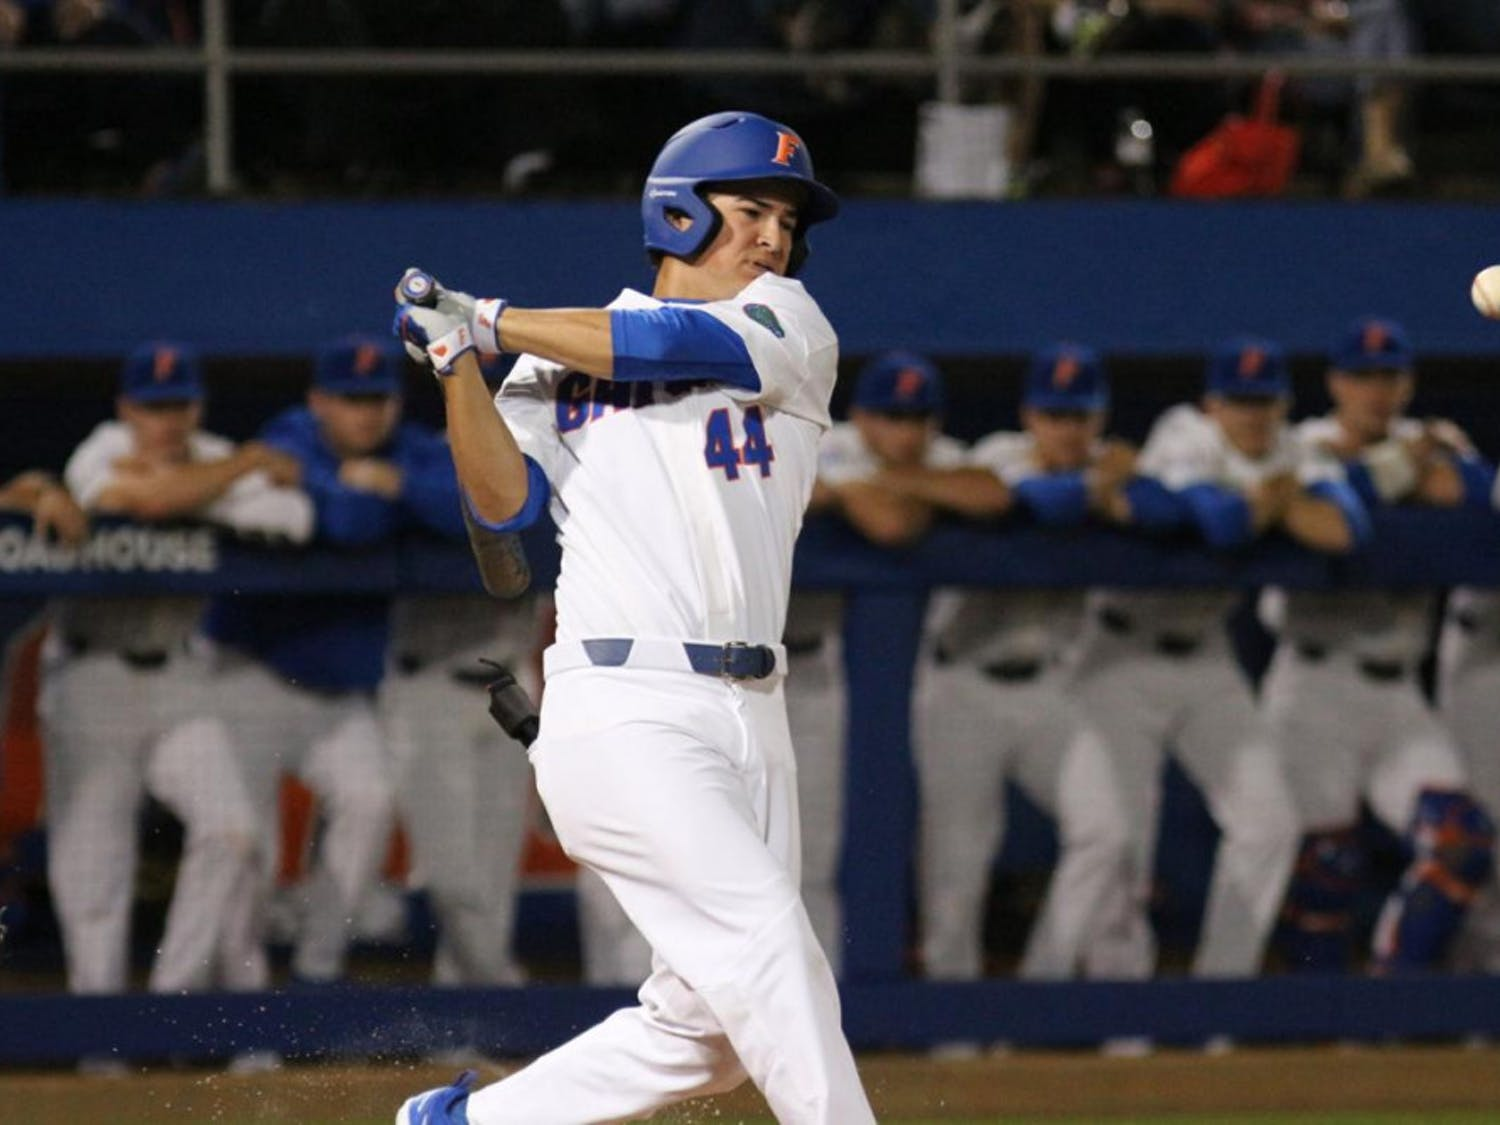 Left fielder Austin Langworthy's walk-off home run in UF's 3-2 win over Auburn in the bottom of the 11th inning sent Florida to the College World Series for the fourth-consecutive season.